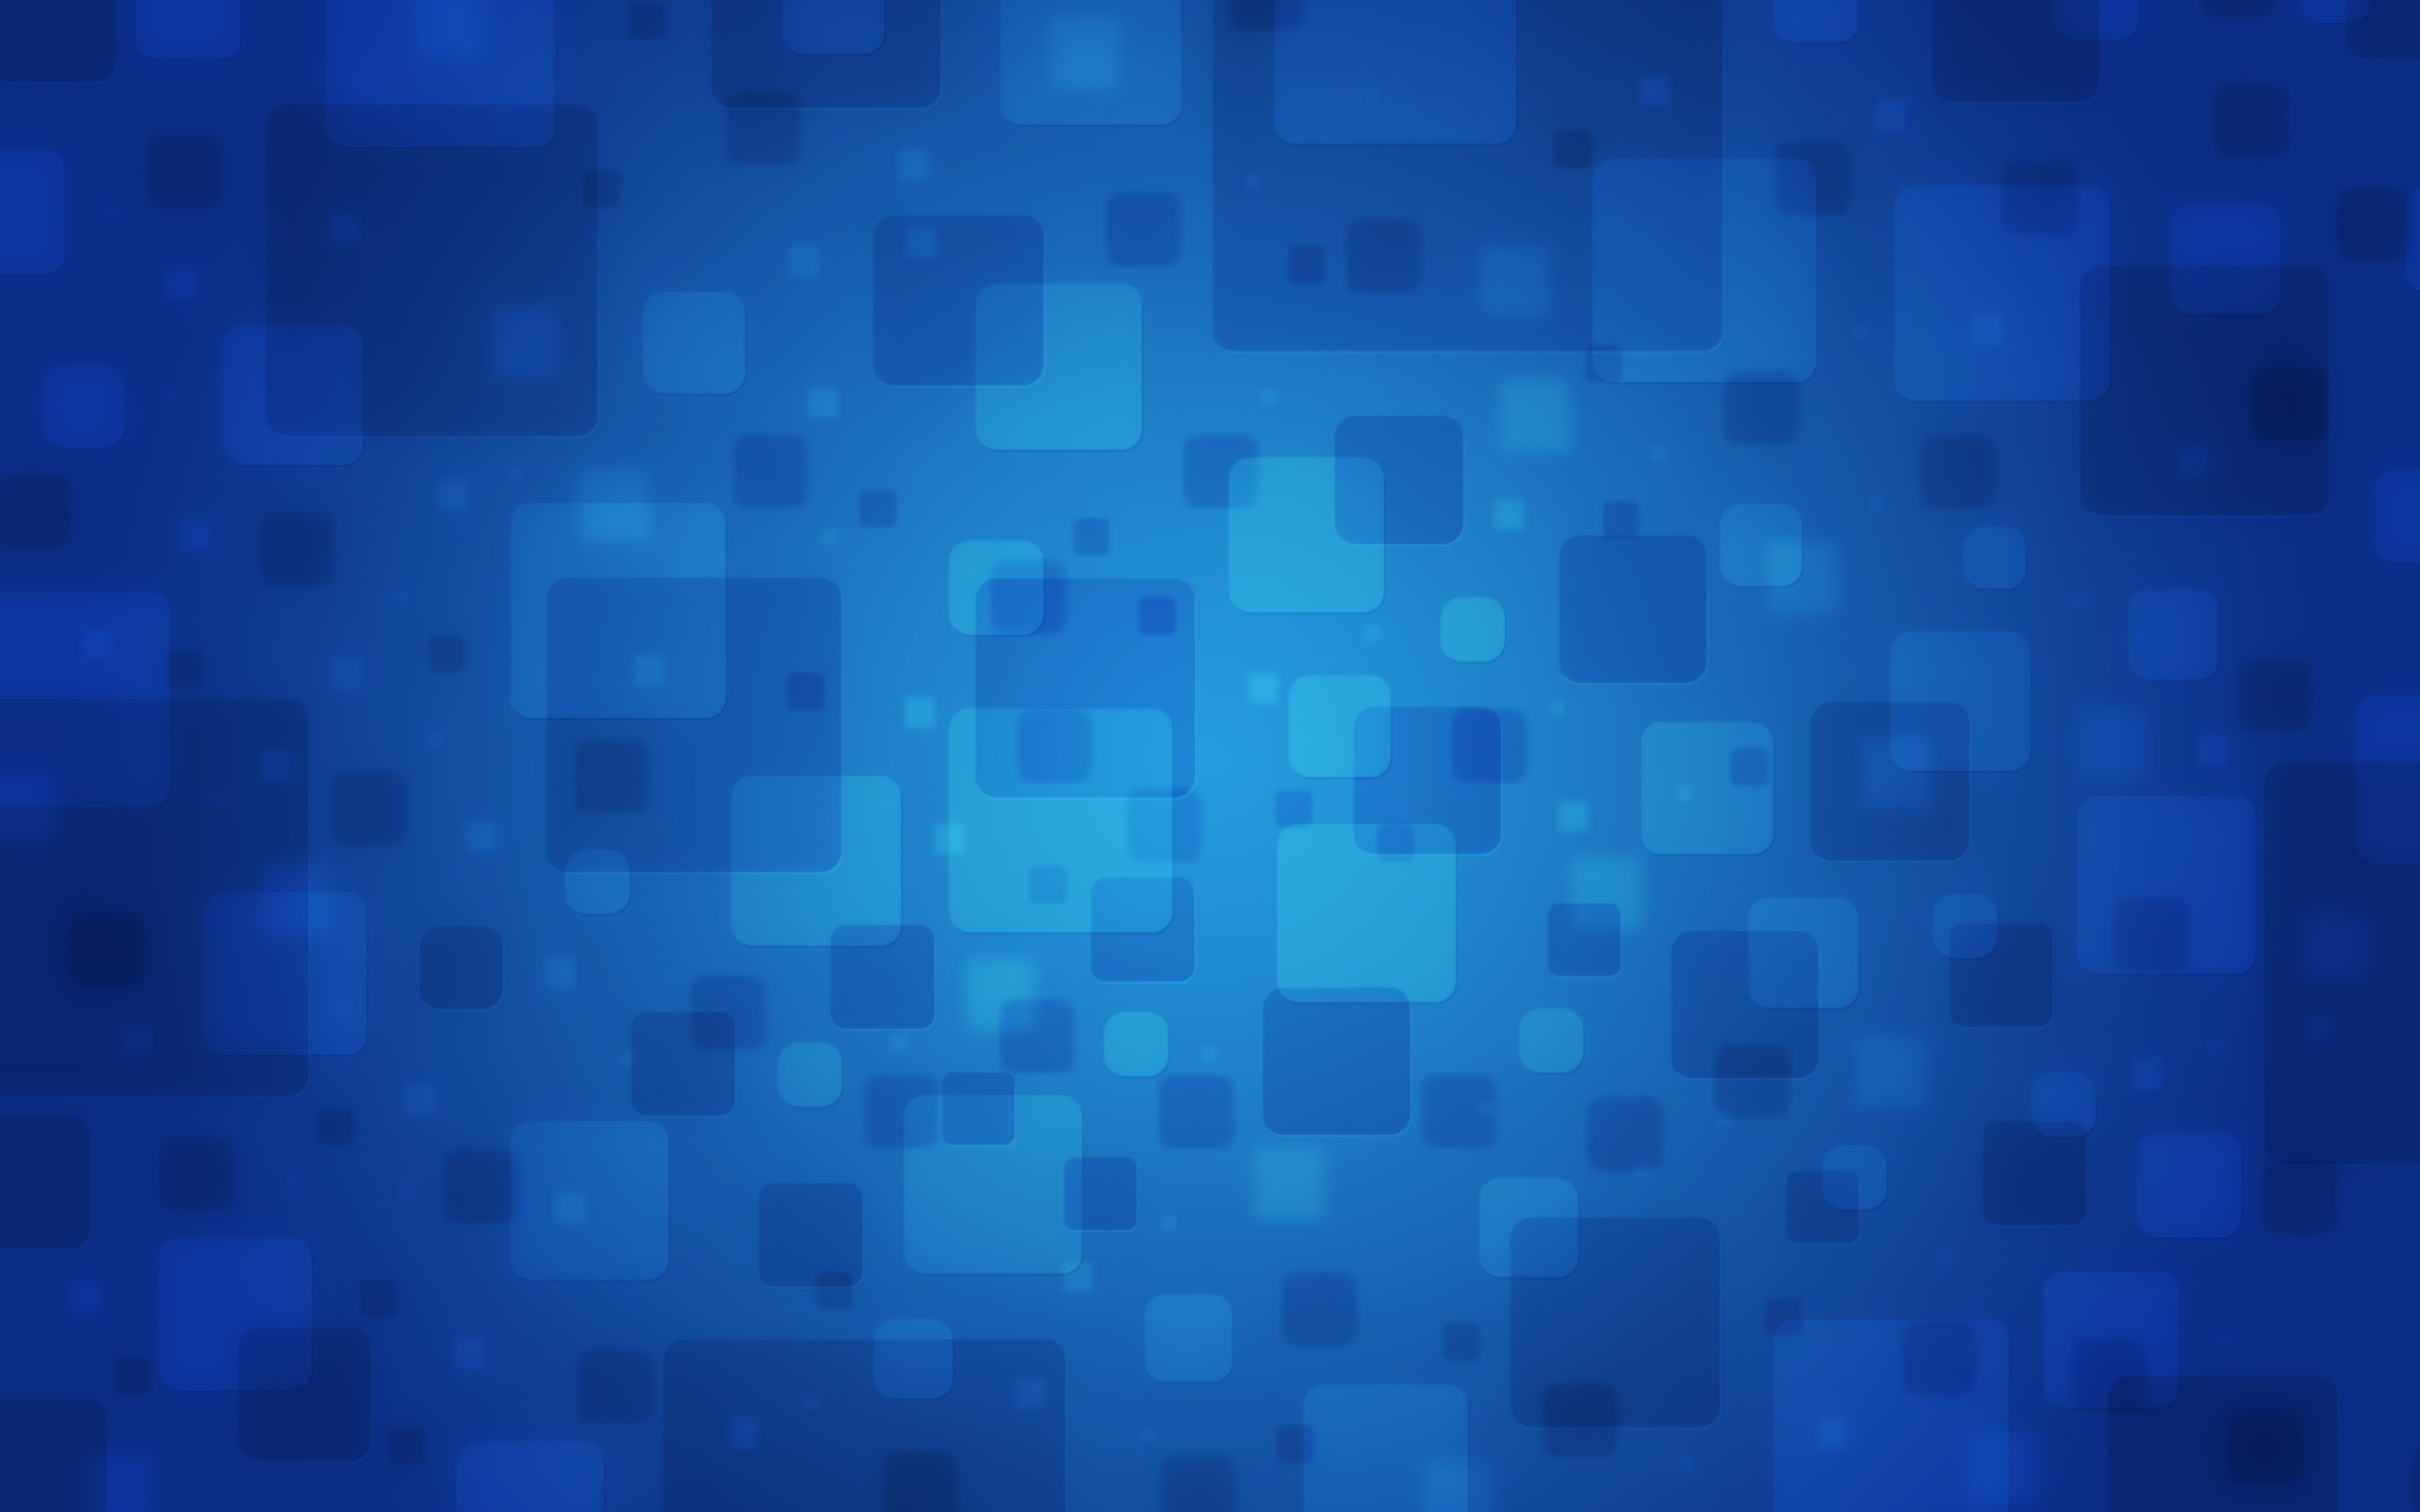 Blue Squares Wallpapers In Jpg Format For Free Download